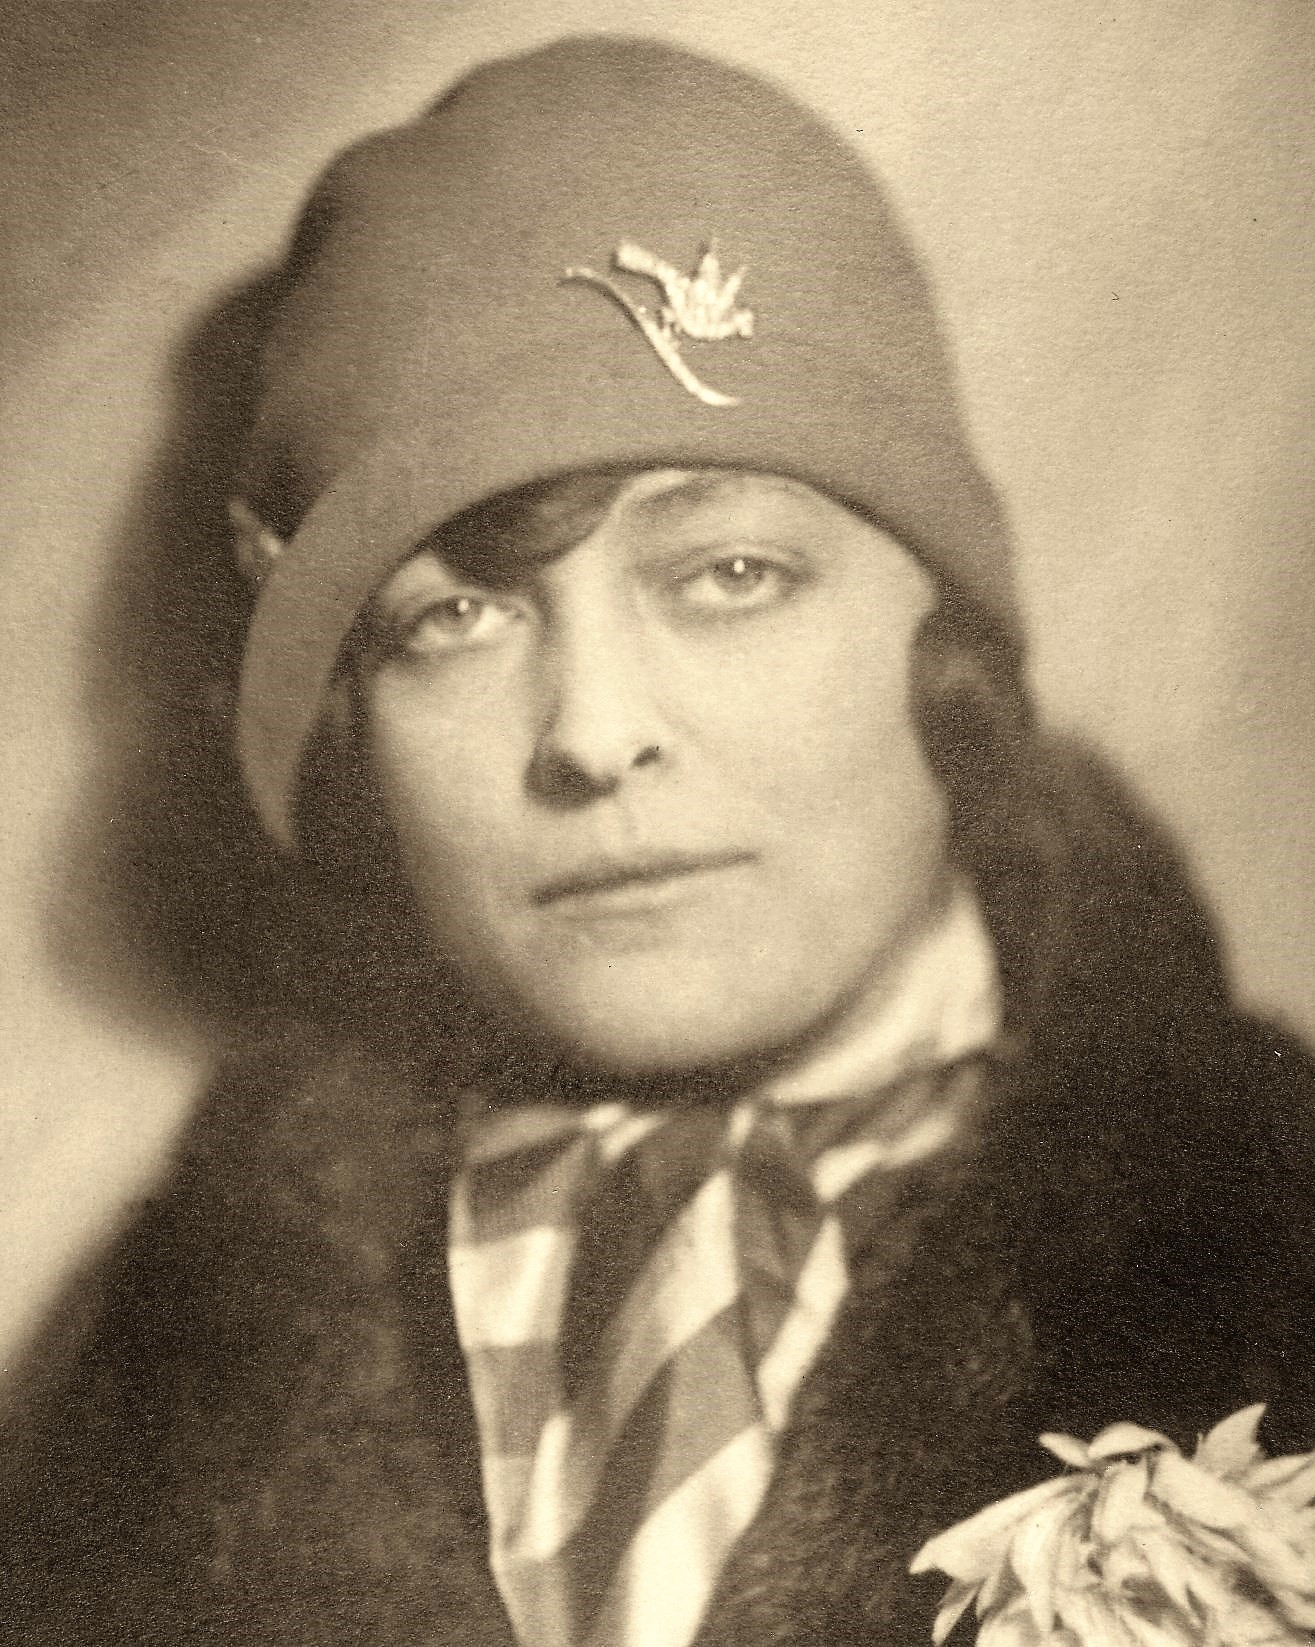 Julie portrait (1927)